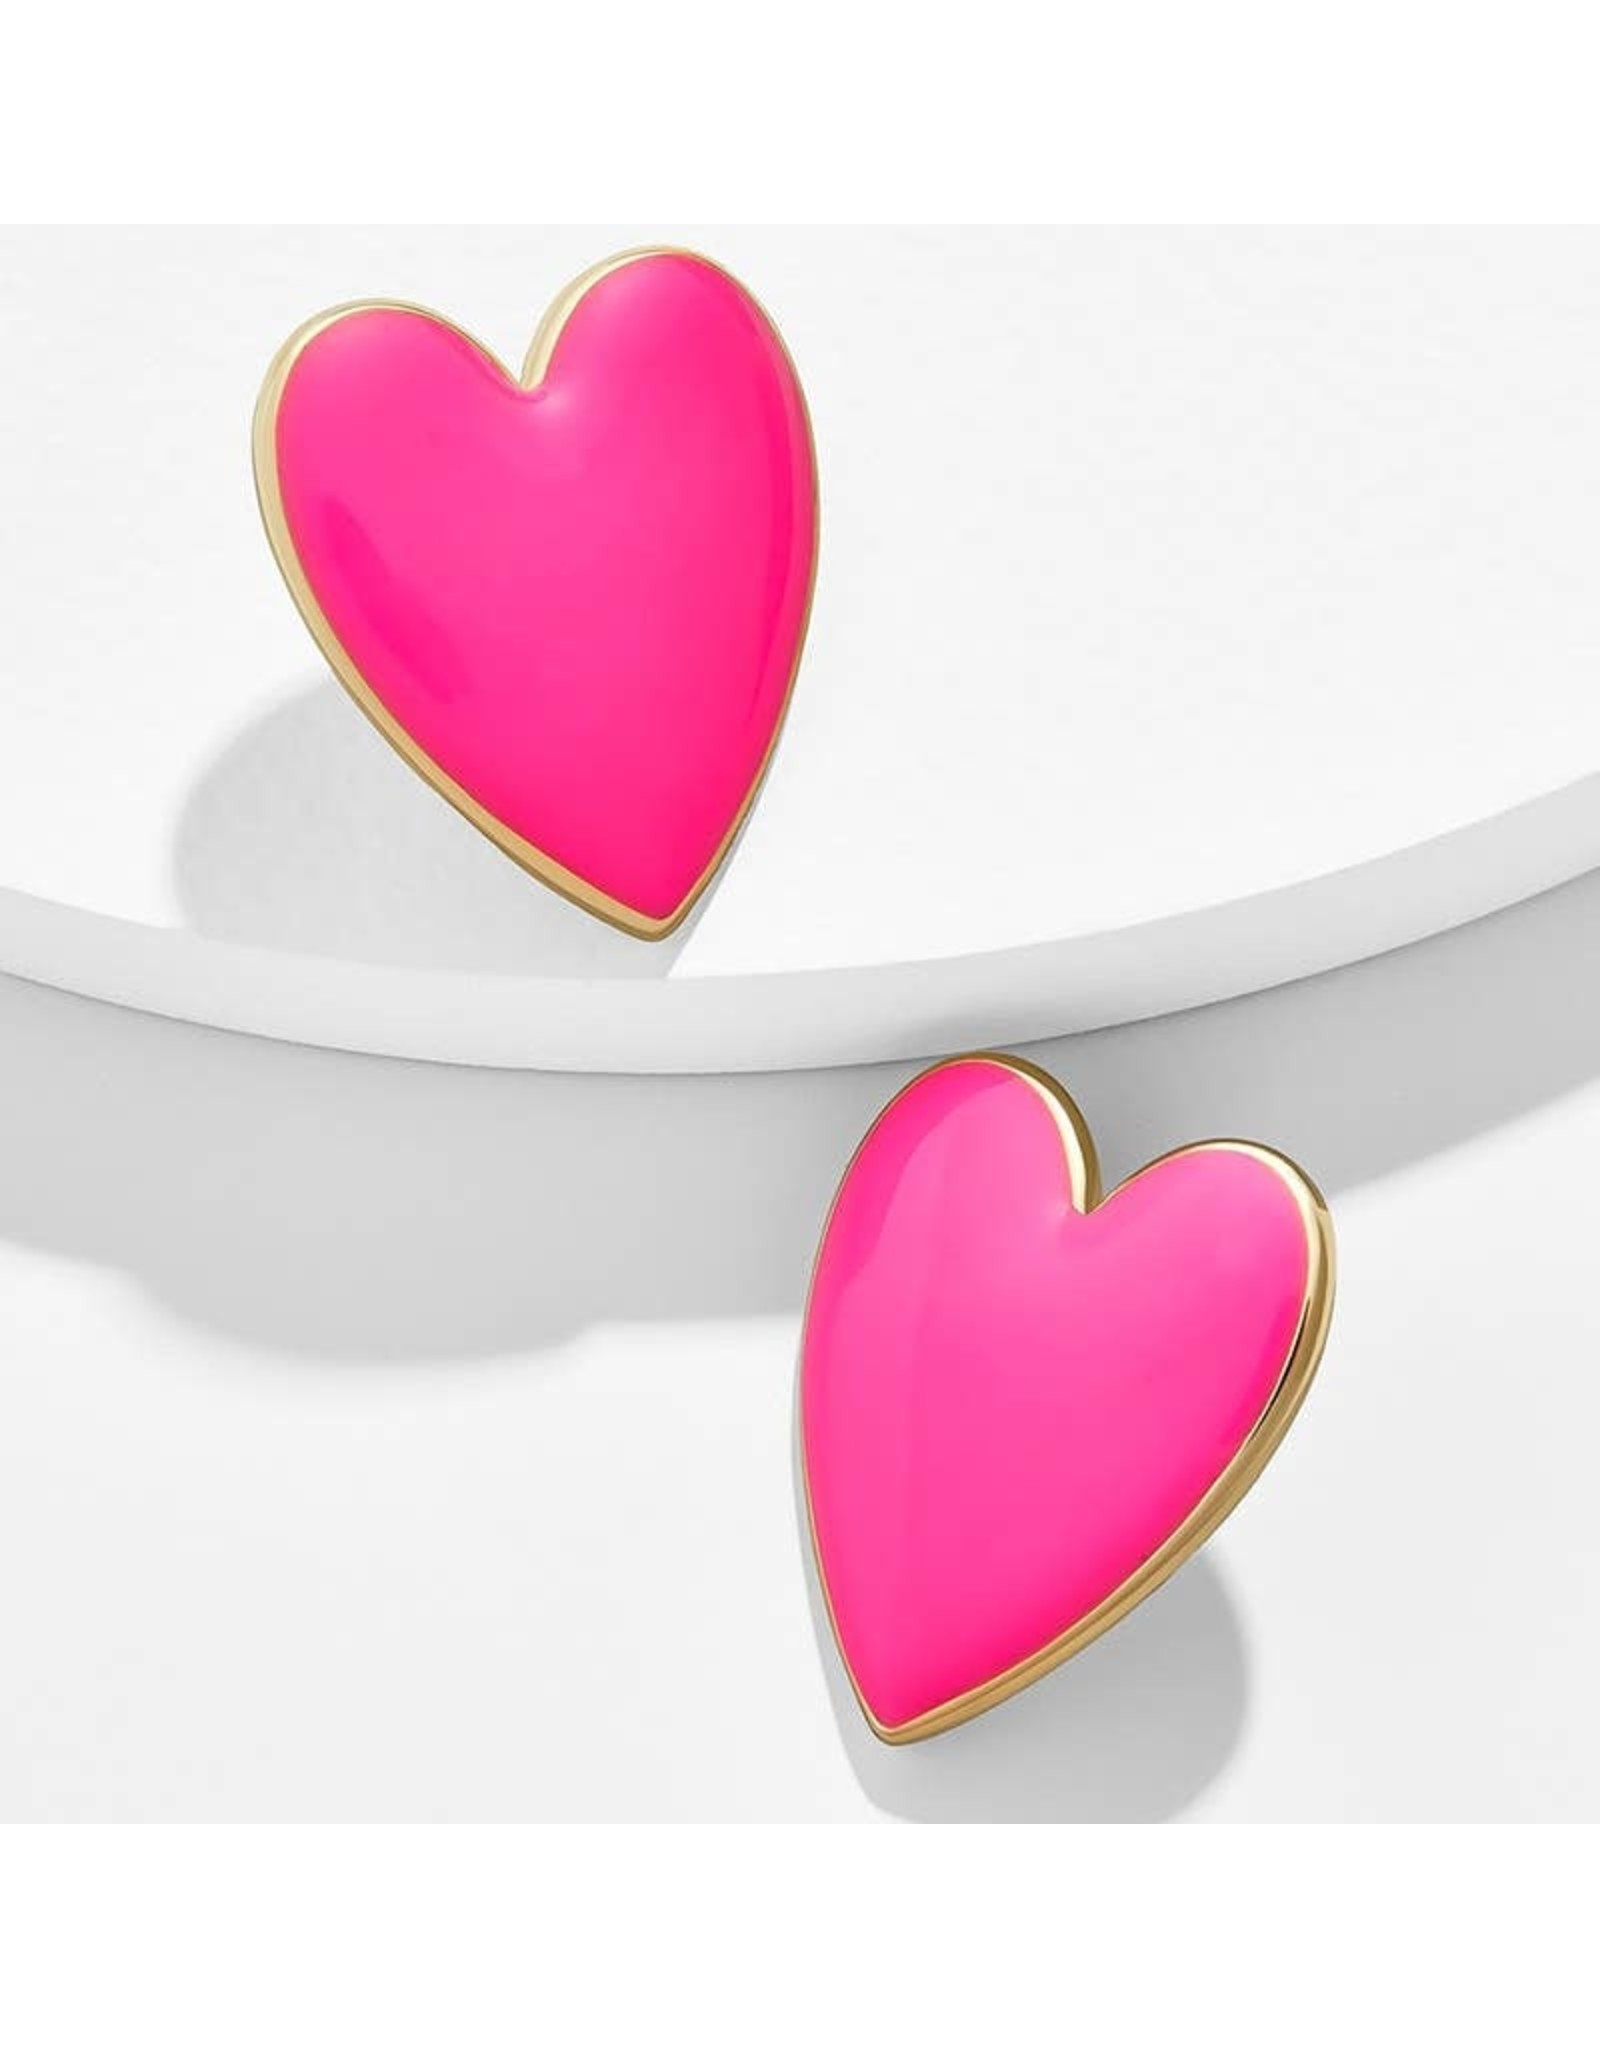 KOKO & LOLA HOT PINK & GOLD ACCENT HEART EARRINGS